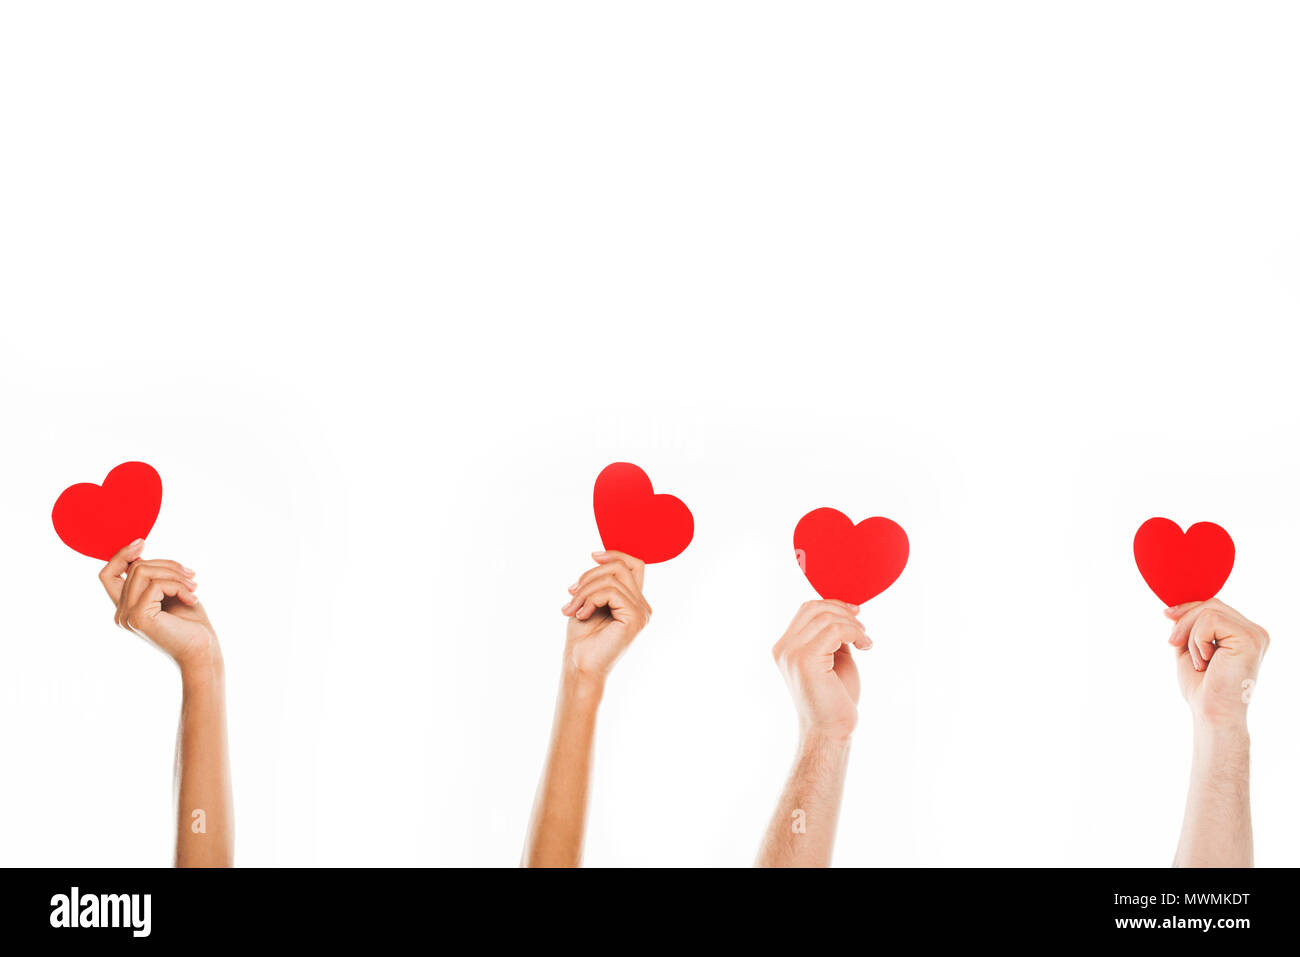 'Cropped view human hands holding red paper hearts, isolated on white - Stock Image